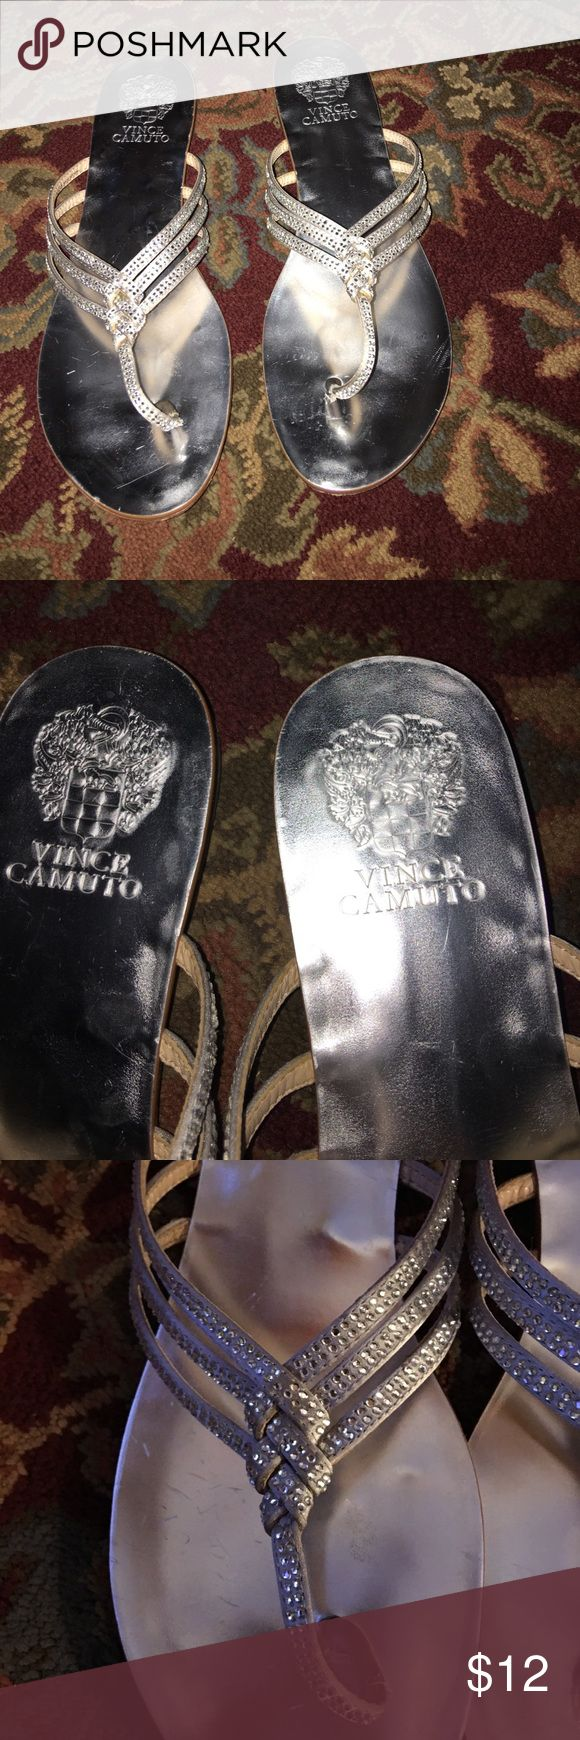 Vince Camuto silver flip flop sandals very pretty Vince Camuto silver flip flop sandals very pretty  Size 8 these could also fit an 8.5  EUC  Smoke free home  Maltipoo family member Vince Camuto Shoes Sandals